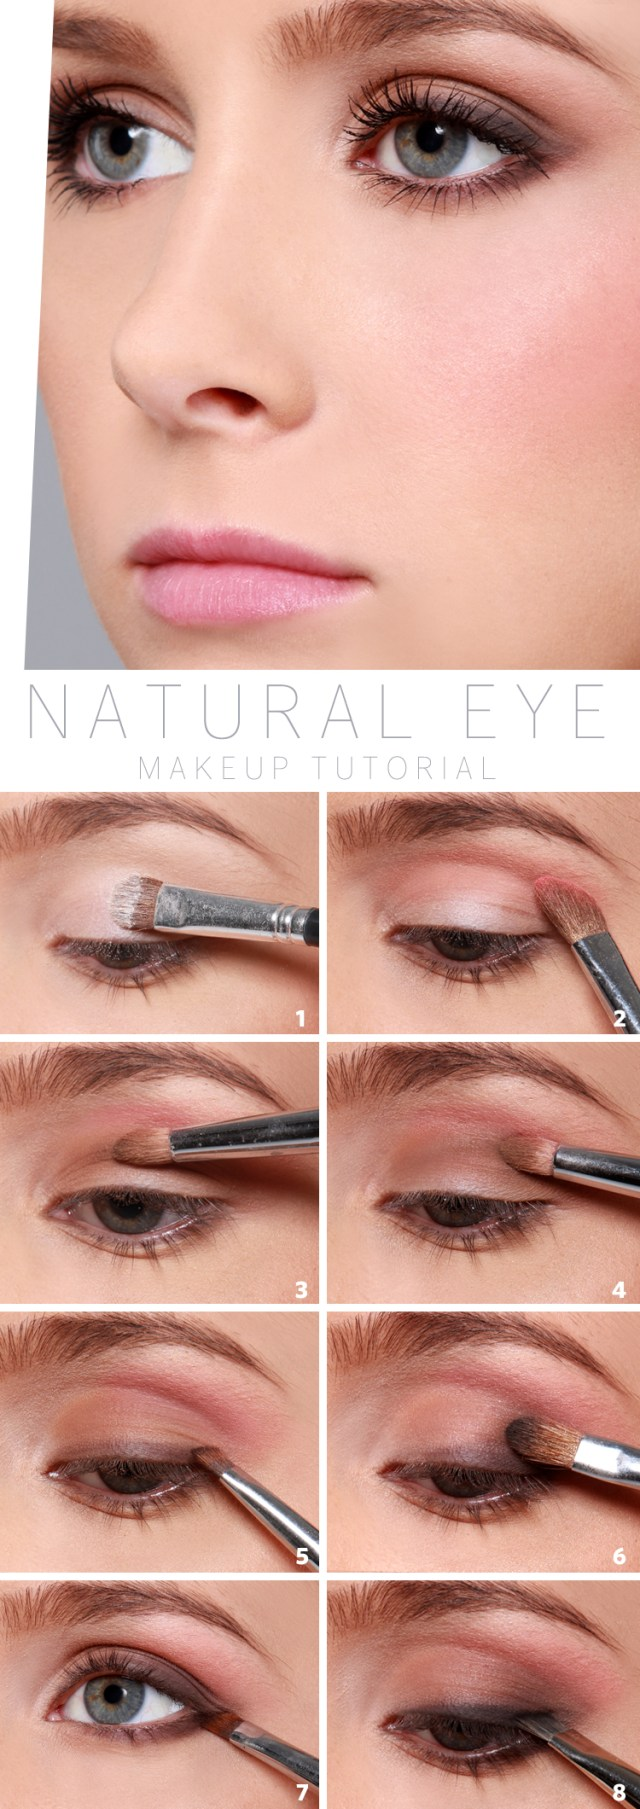 Natural Looking Eye Makeup Lulus How To Natural Eye Makeup Tutorial Lulus Fashion Blog